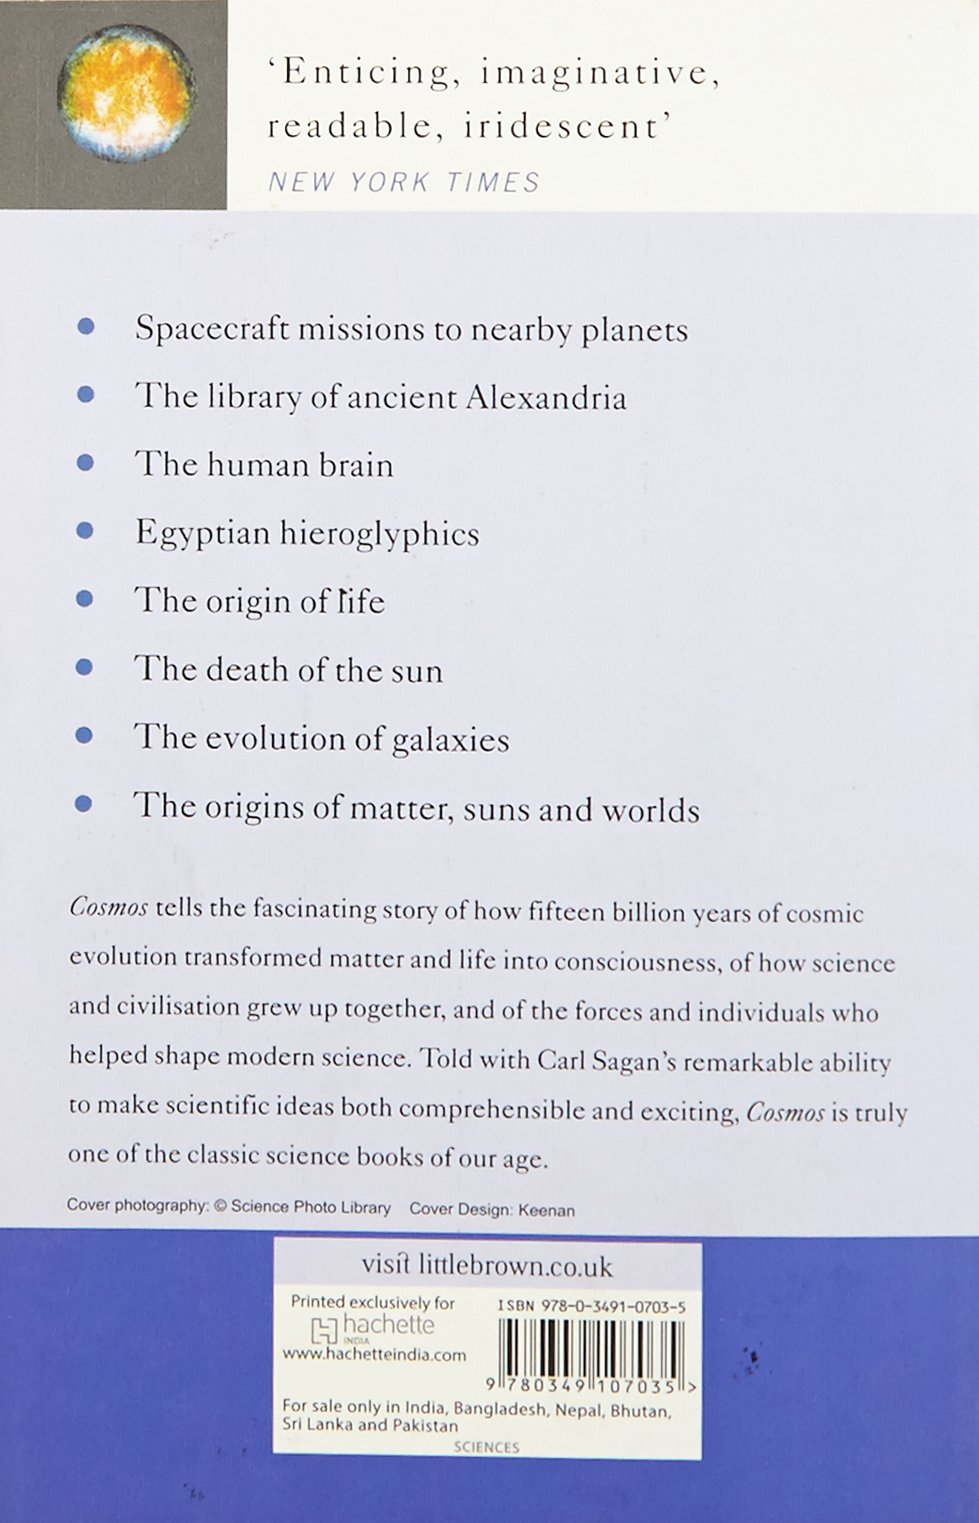 Cosmos: The Story of Cosmic Evolution, Science and